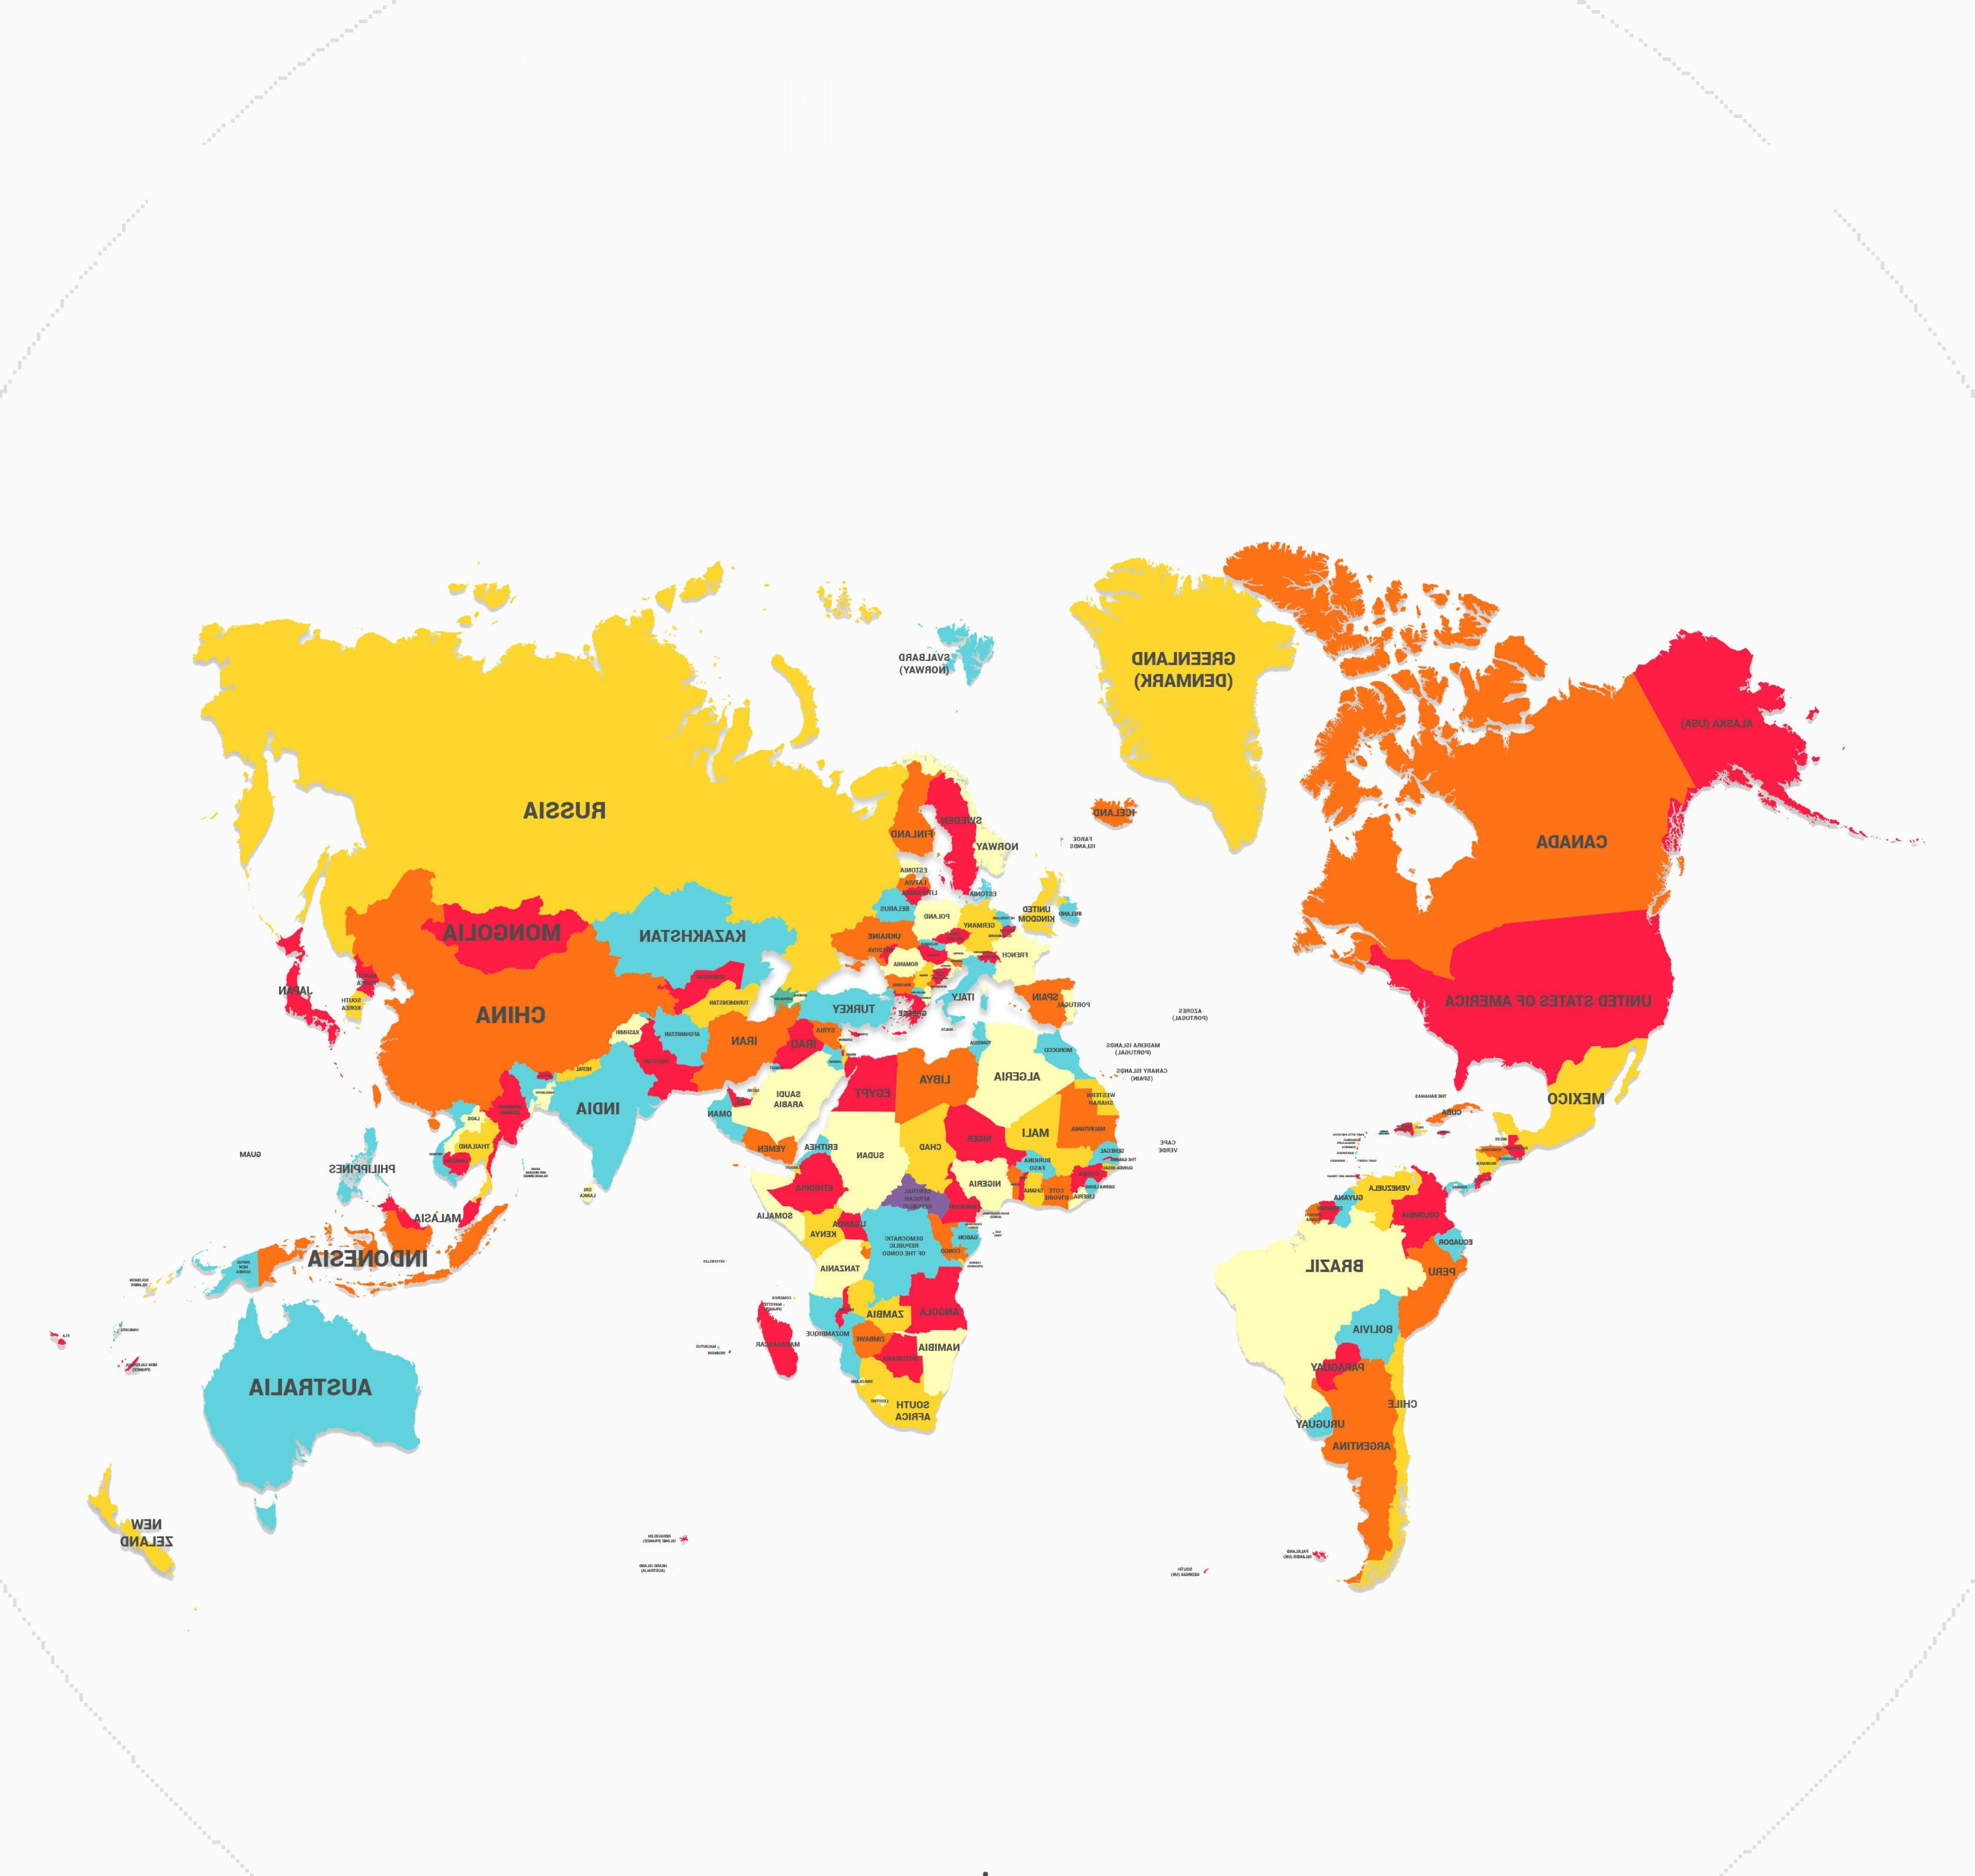 World Map Vector Ai at GetDrawings.com | Free for personal use World ...